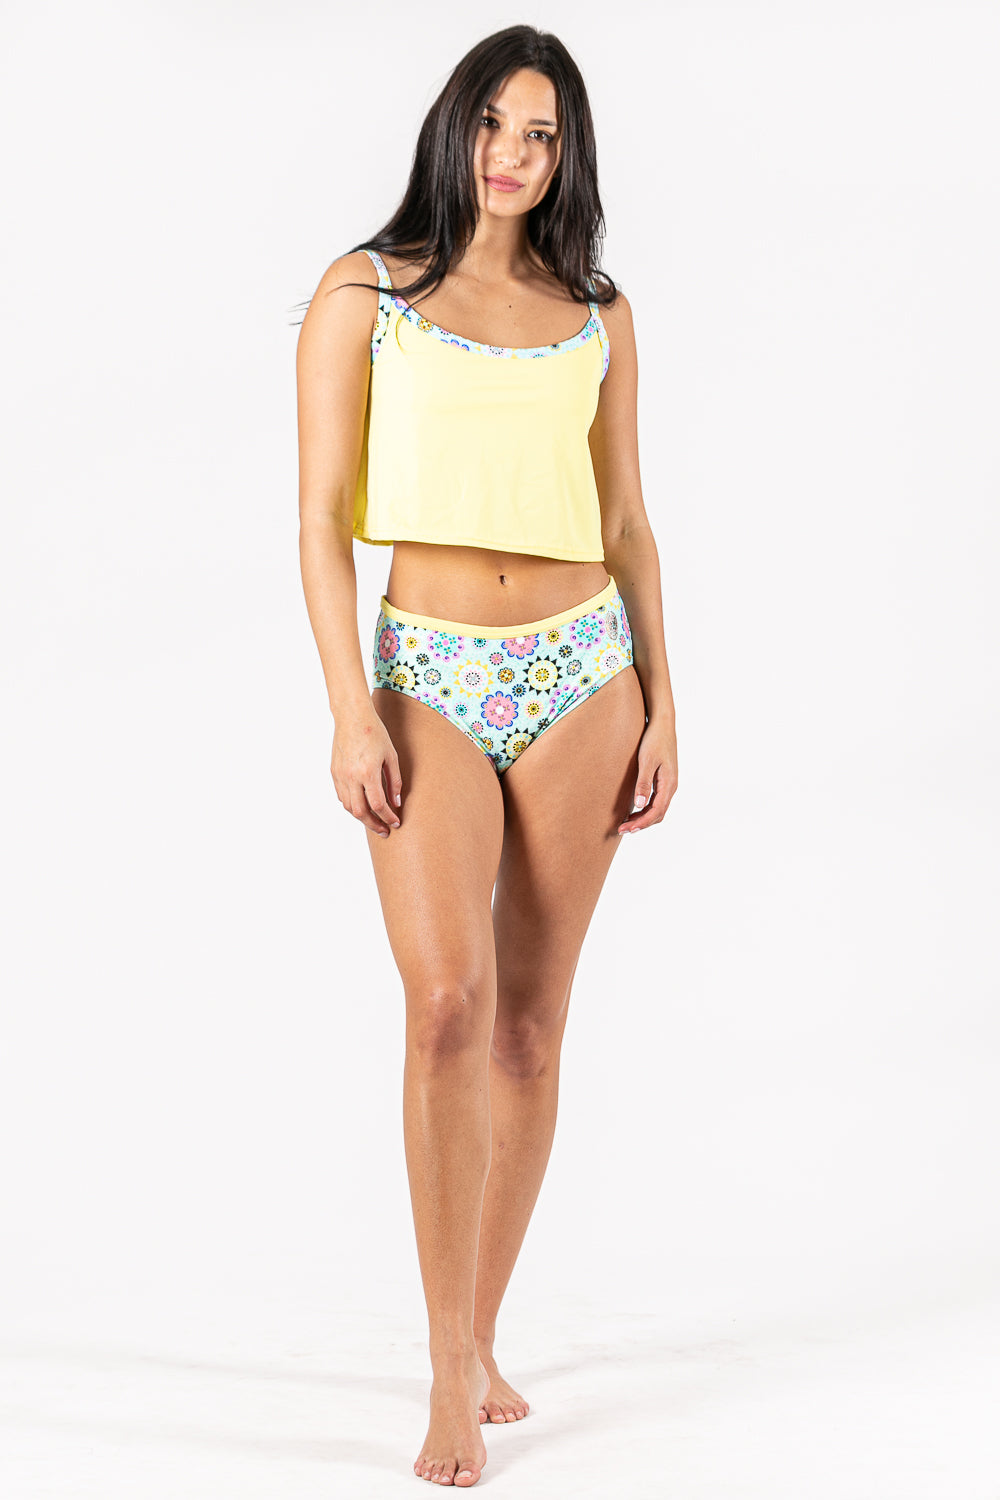 Two pieces tankini and supportive top. Flowering print  combine in yellow tones. Sustainable Swimwear made from recycled plastics and bottles by BRISSUS